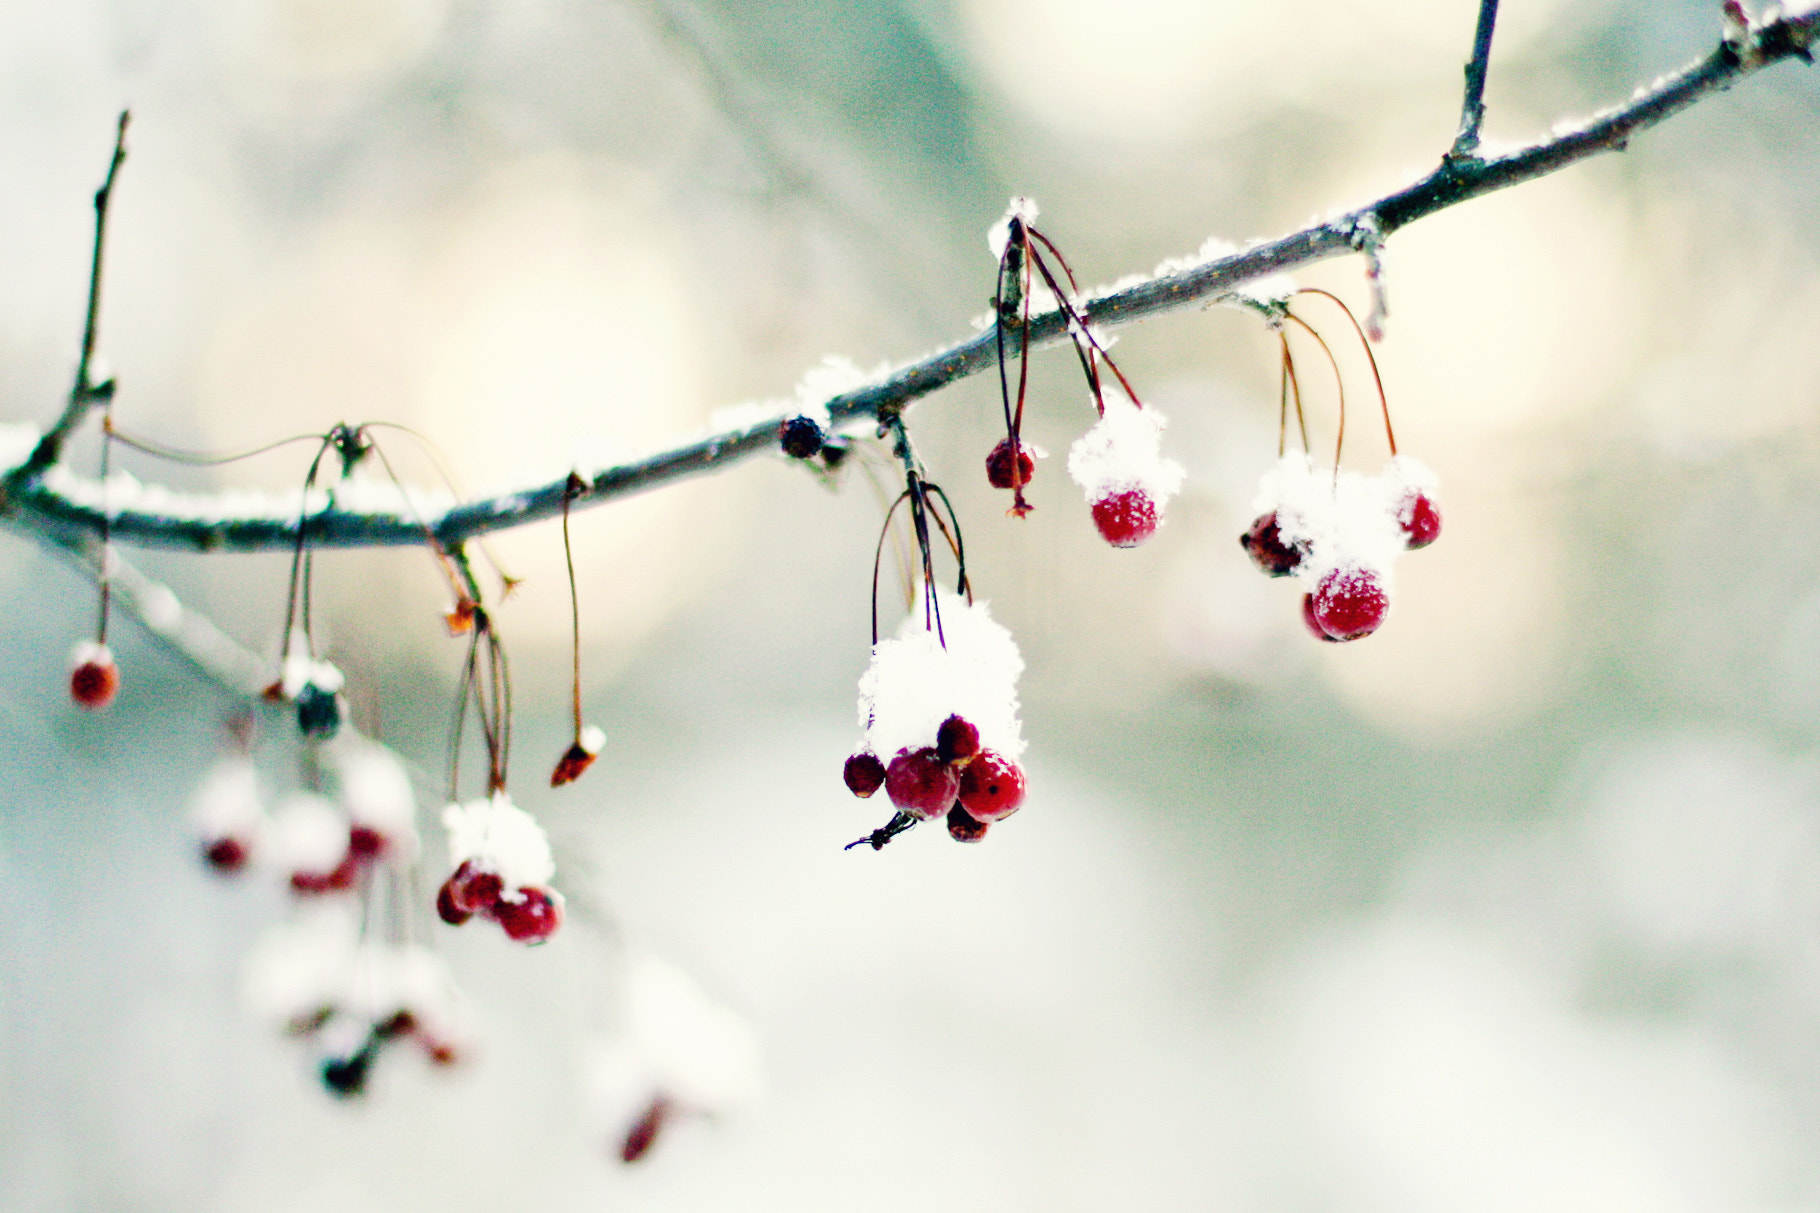 Photograph Rowan in Winter by Minna R on 500px